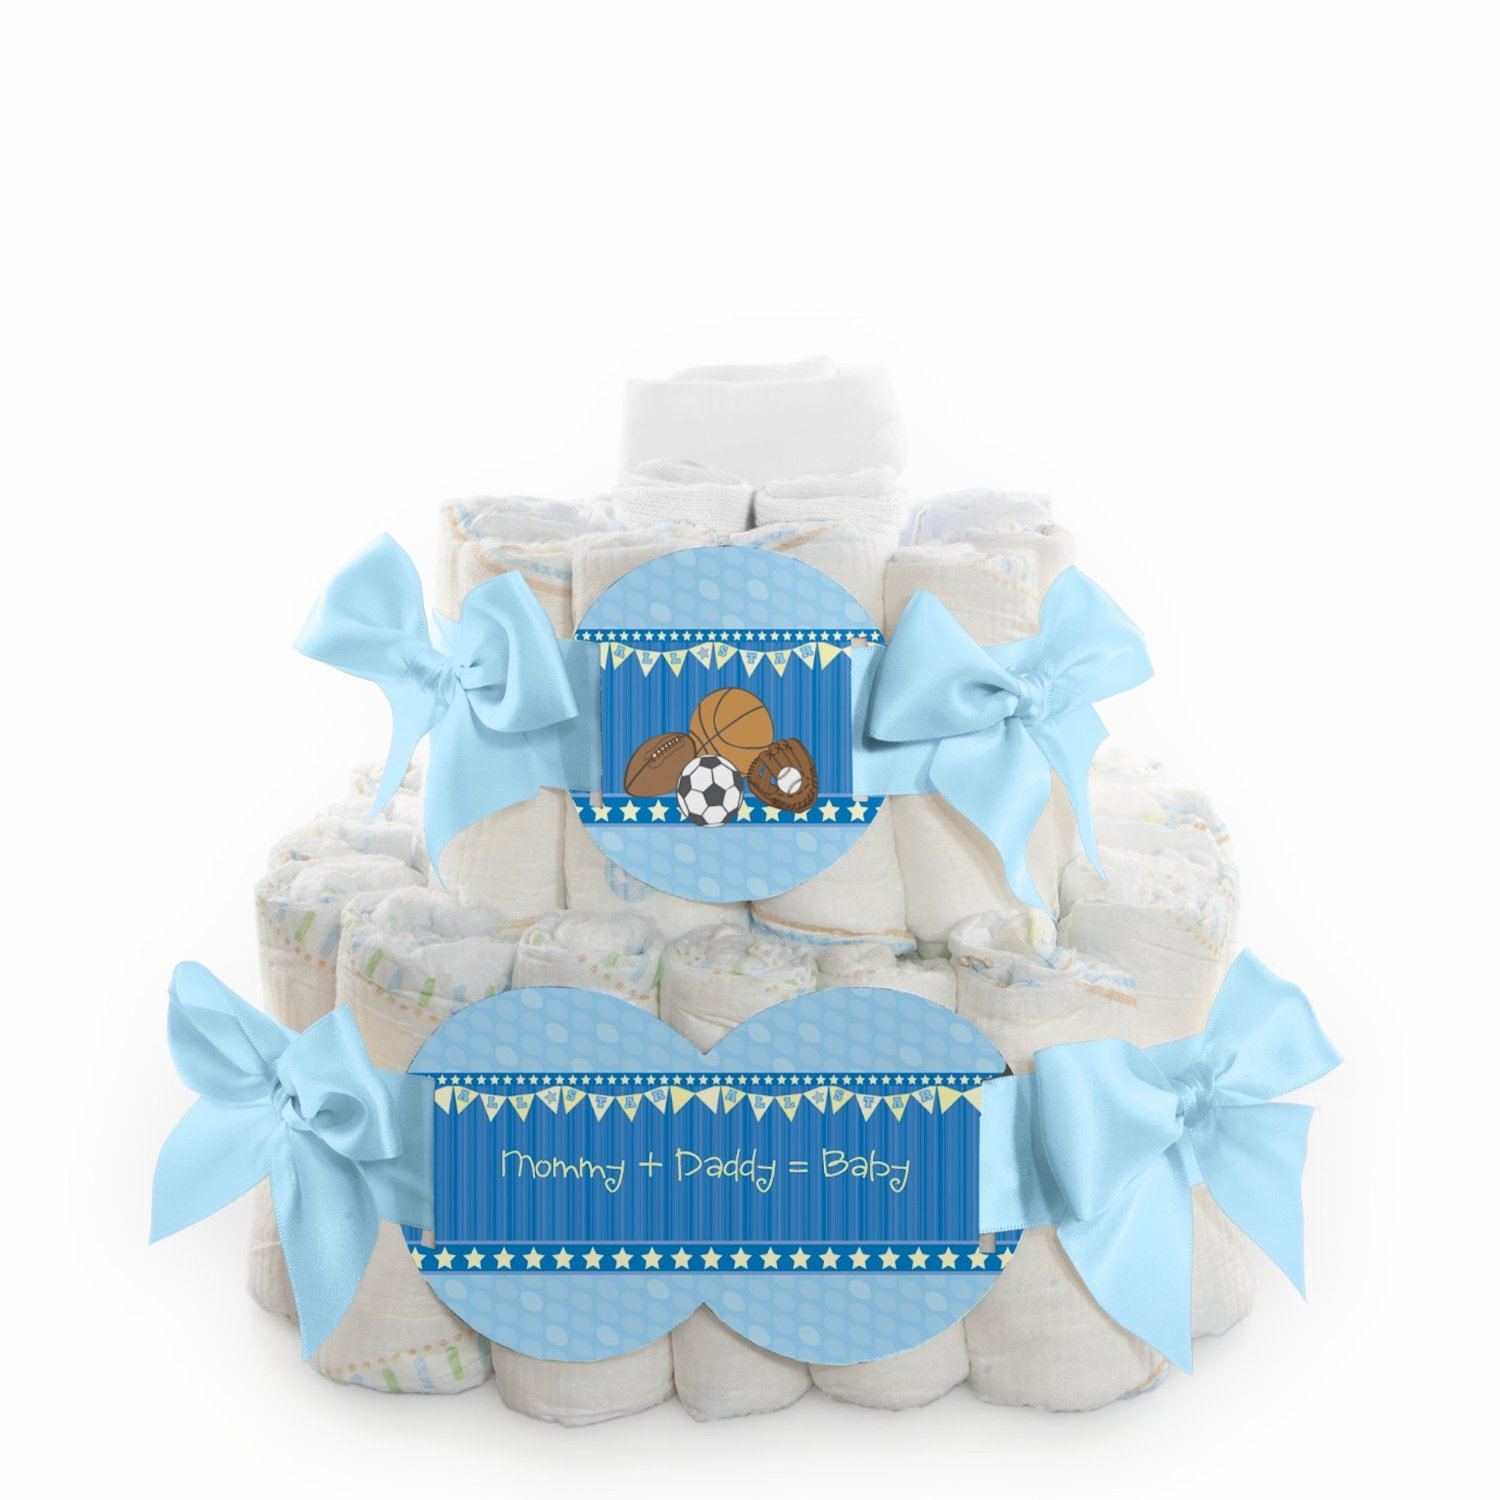 All Star Sports - 2 Tier Square Baby Shower Diaper Cake